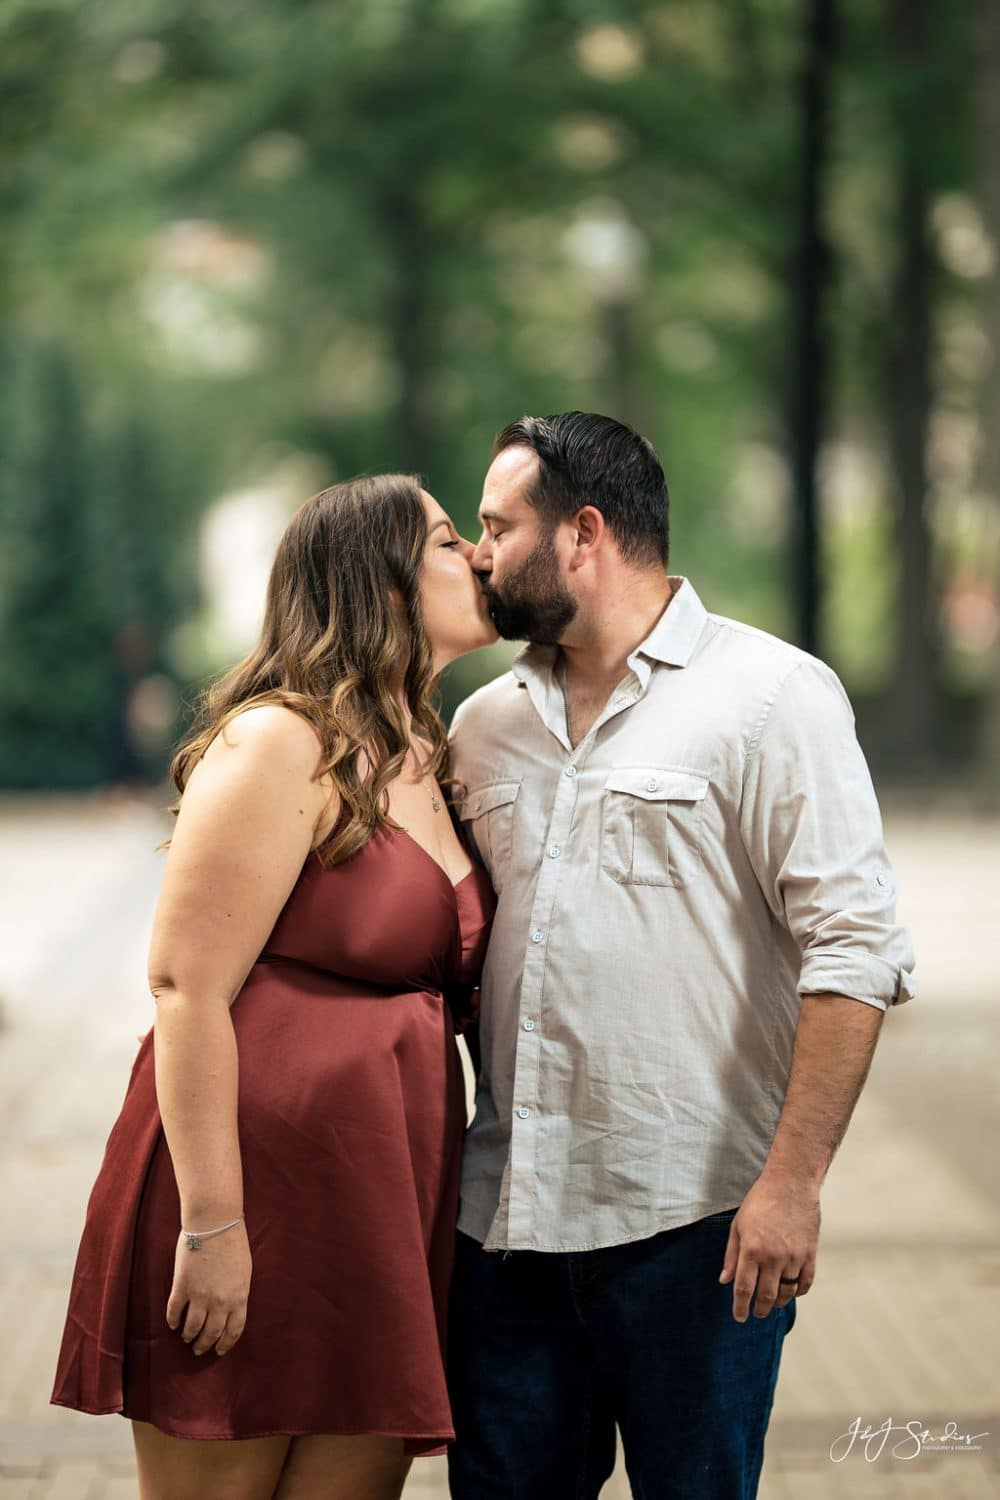 Engaged couple sharing a kiss at the park Rittenhouse Square and Addison Street Engagement Shot By John Ryan